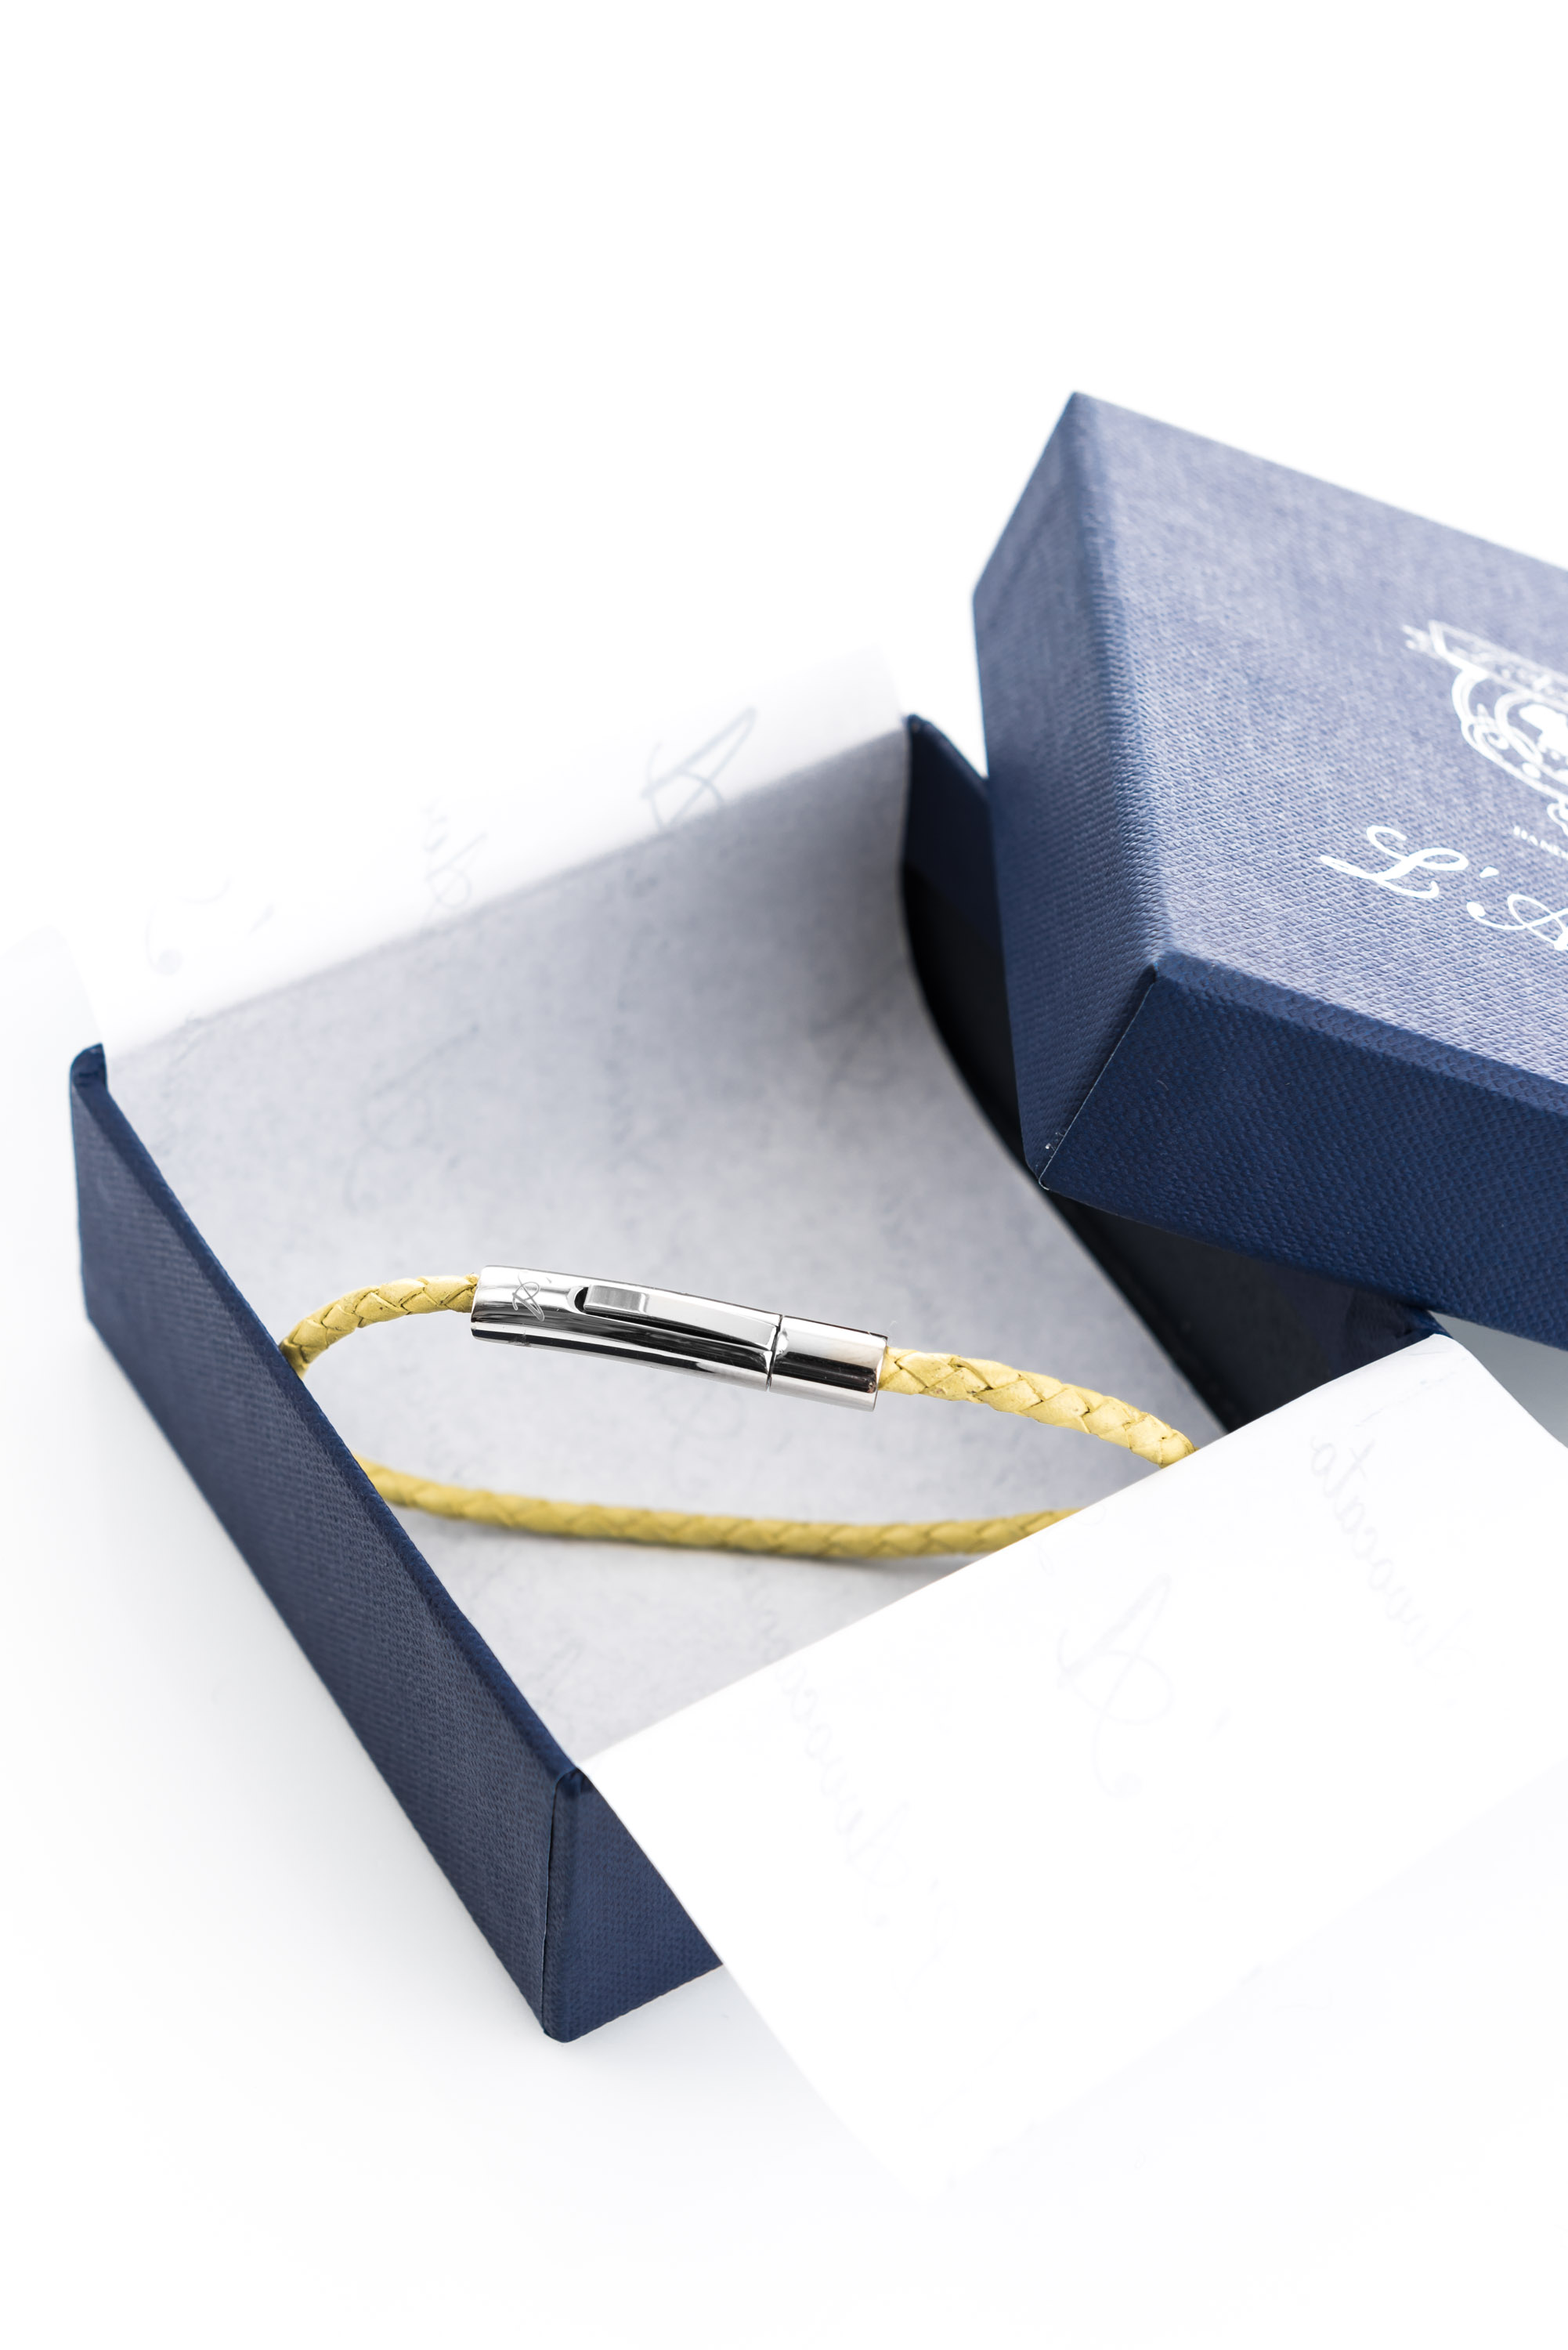 "Vowen yellow leather bracelet ""Skin"" L'Avvocato in  its packaging."